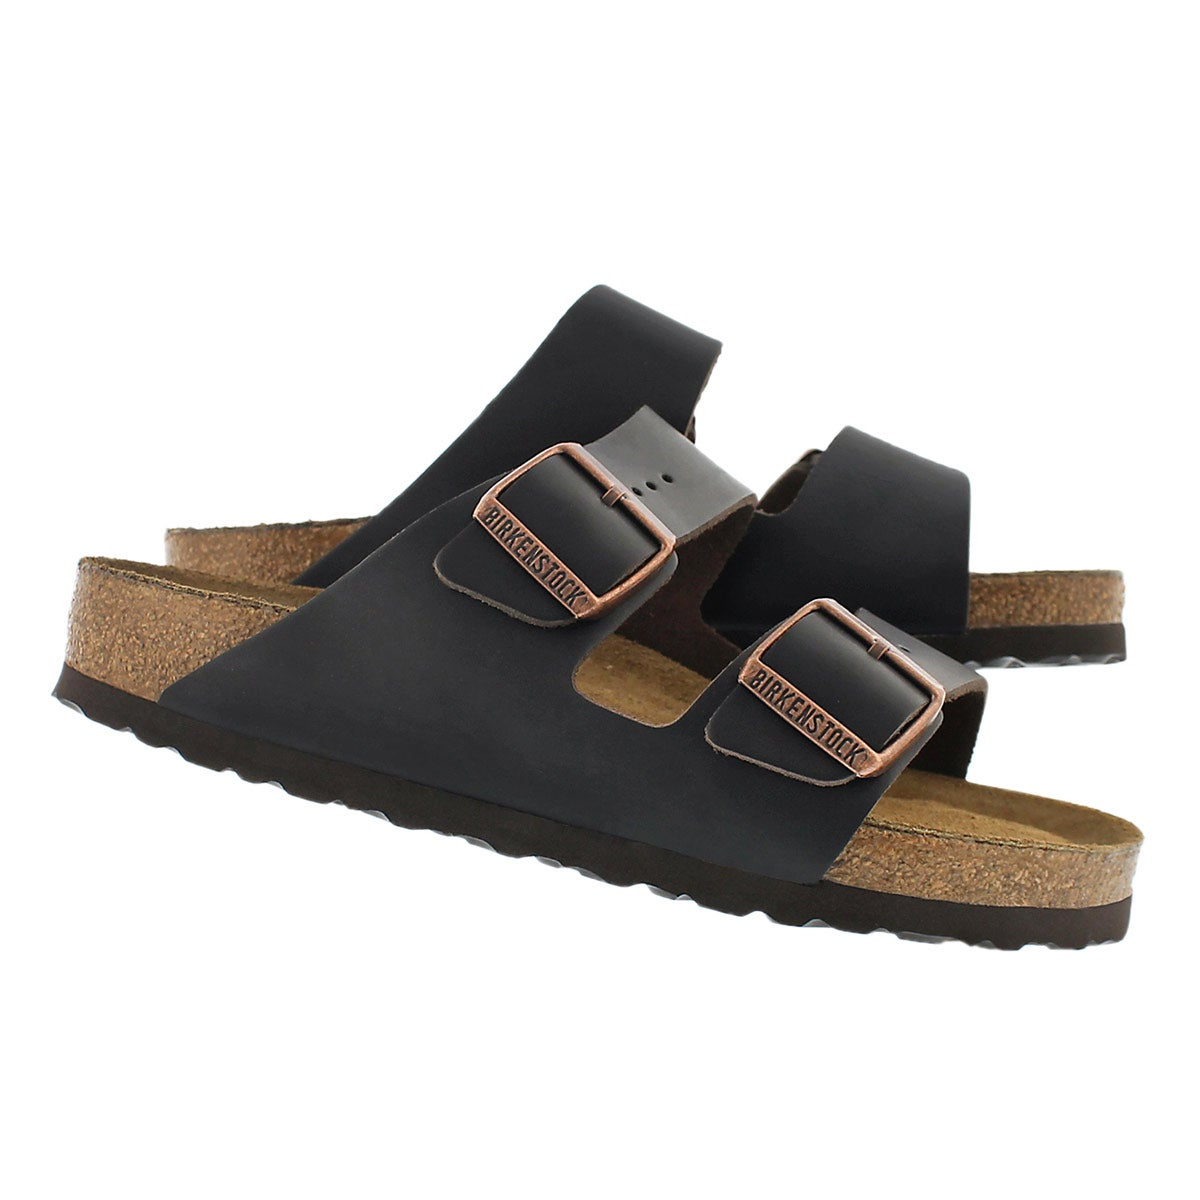 Lds Arizona brown 2 strap sandal SF